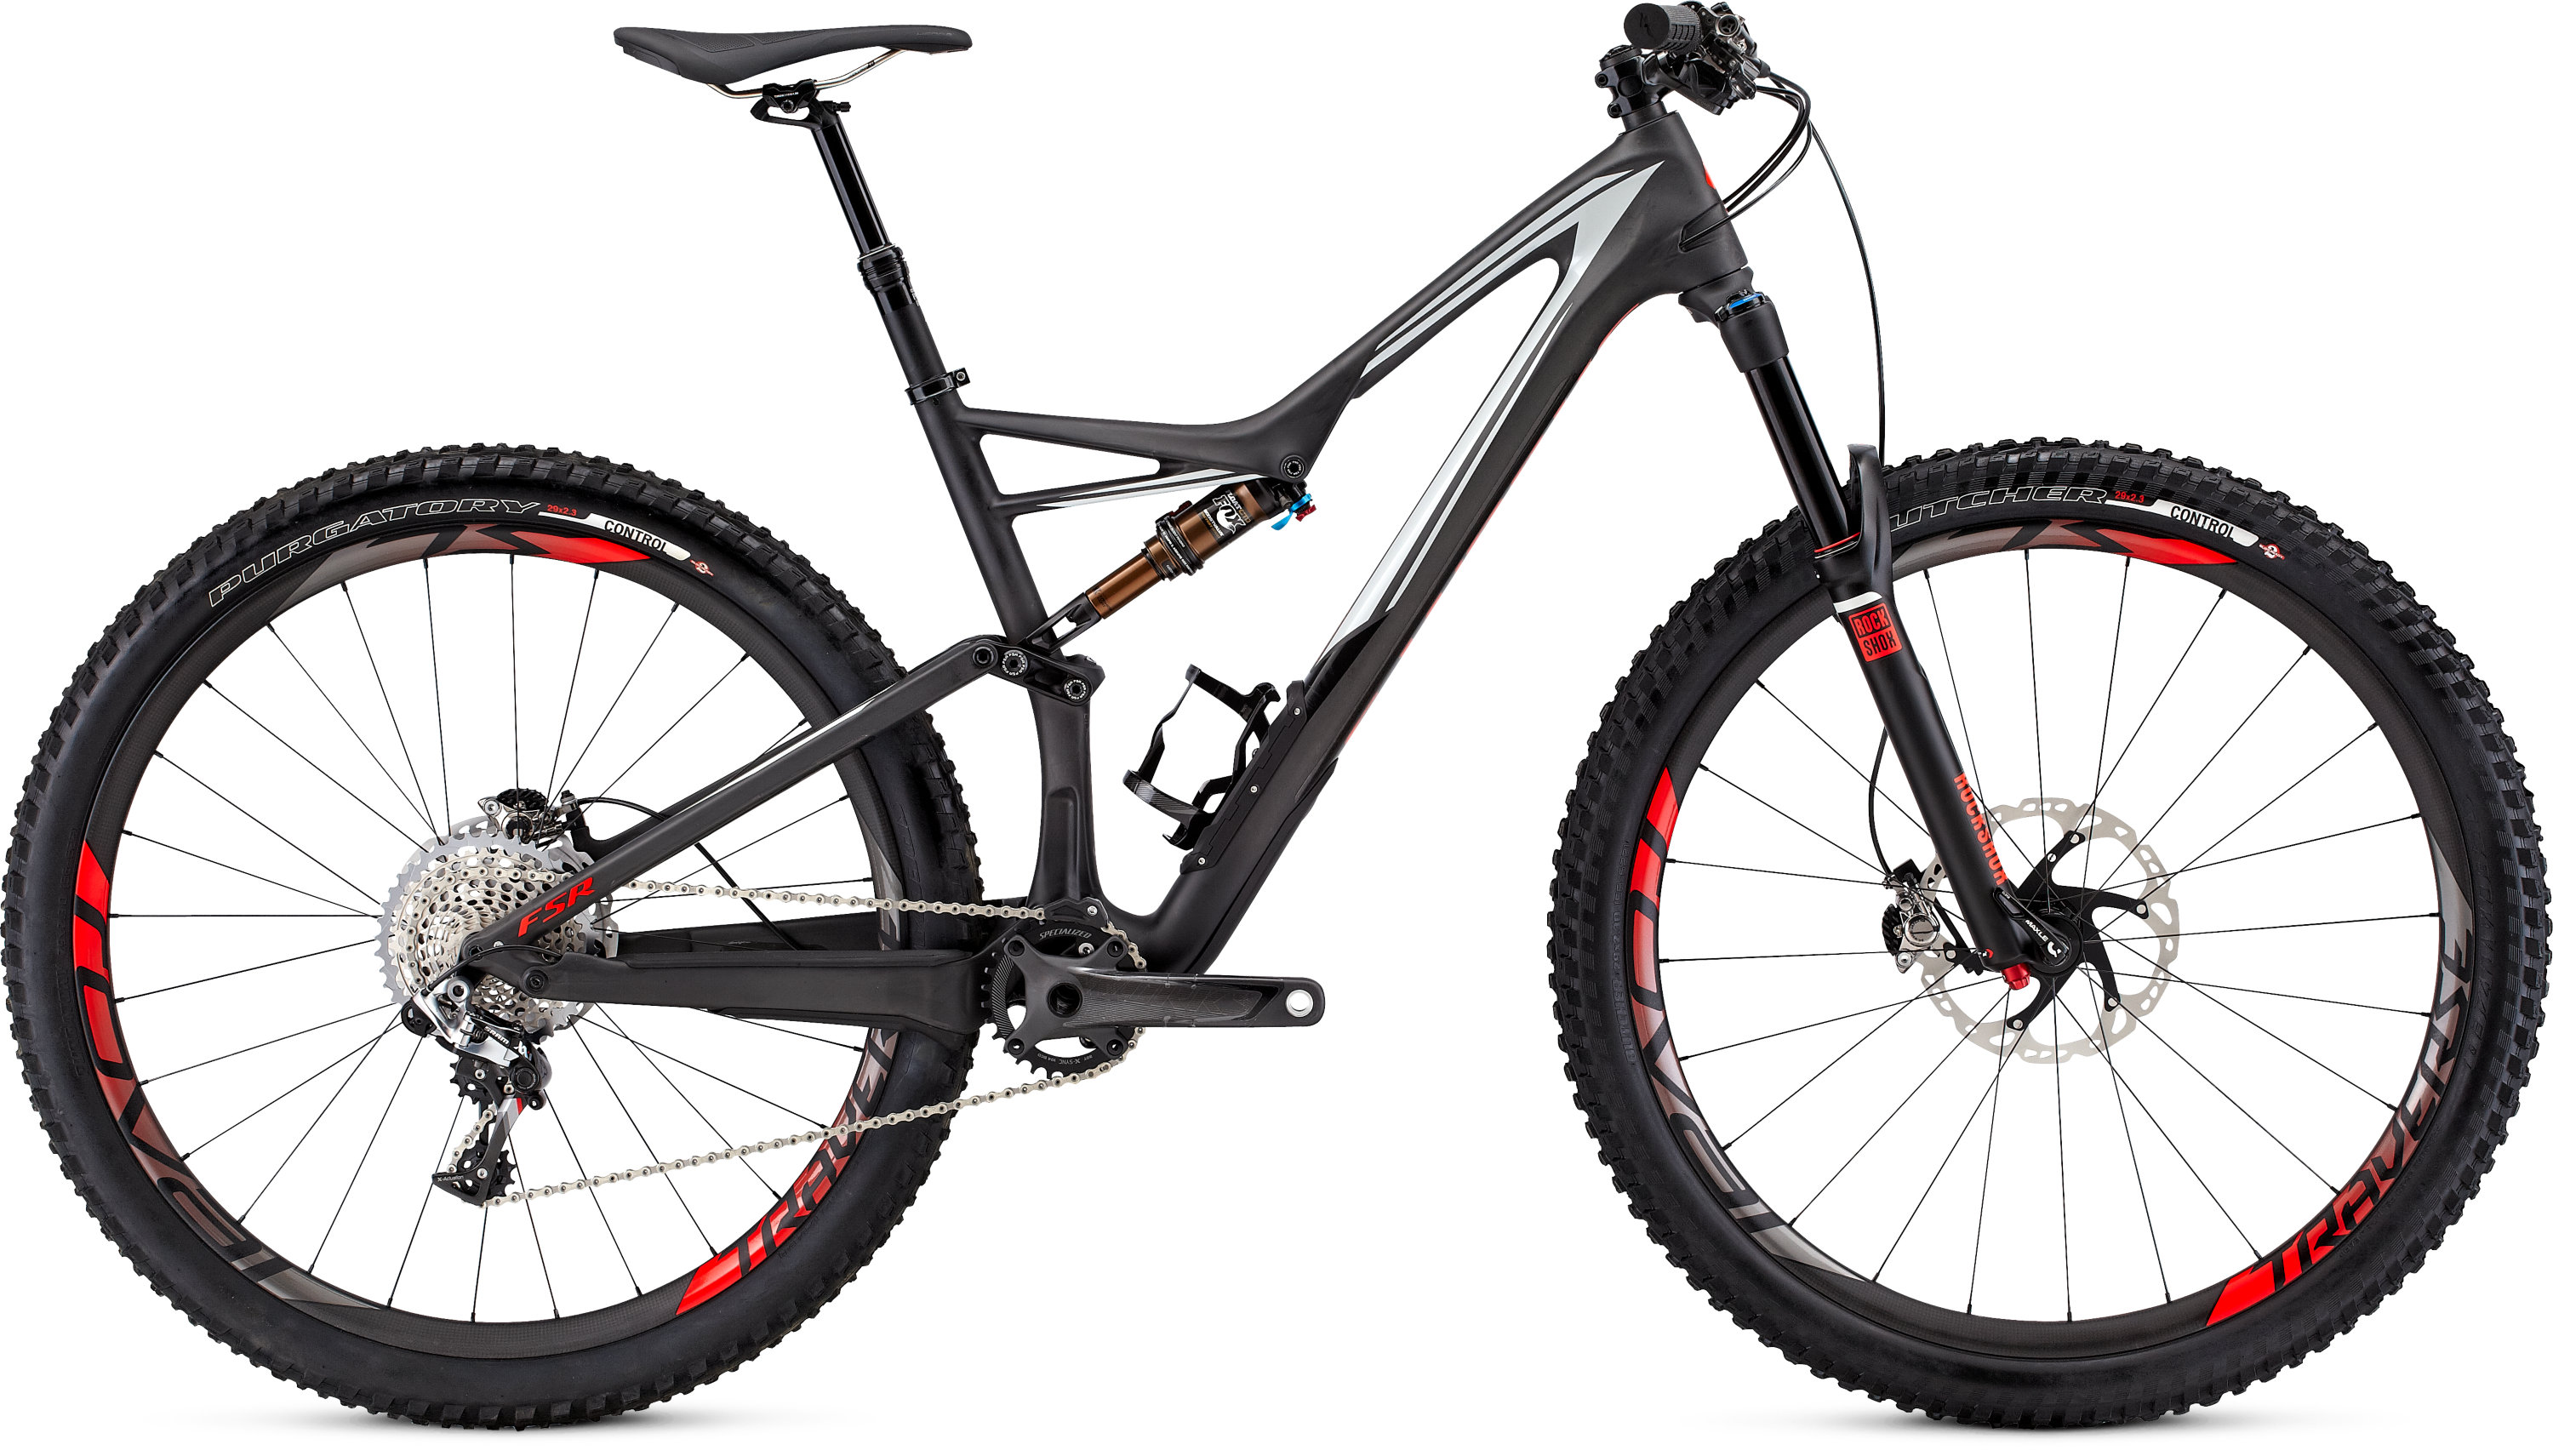 SPECIALIZED SW SJ FSR CARBON 29 CARB/DRTY WHT/RKTRED S - Bikedreams & Dustbikes